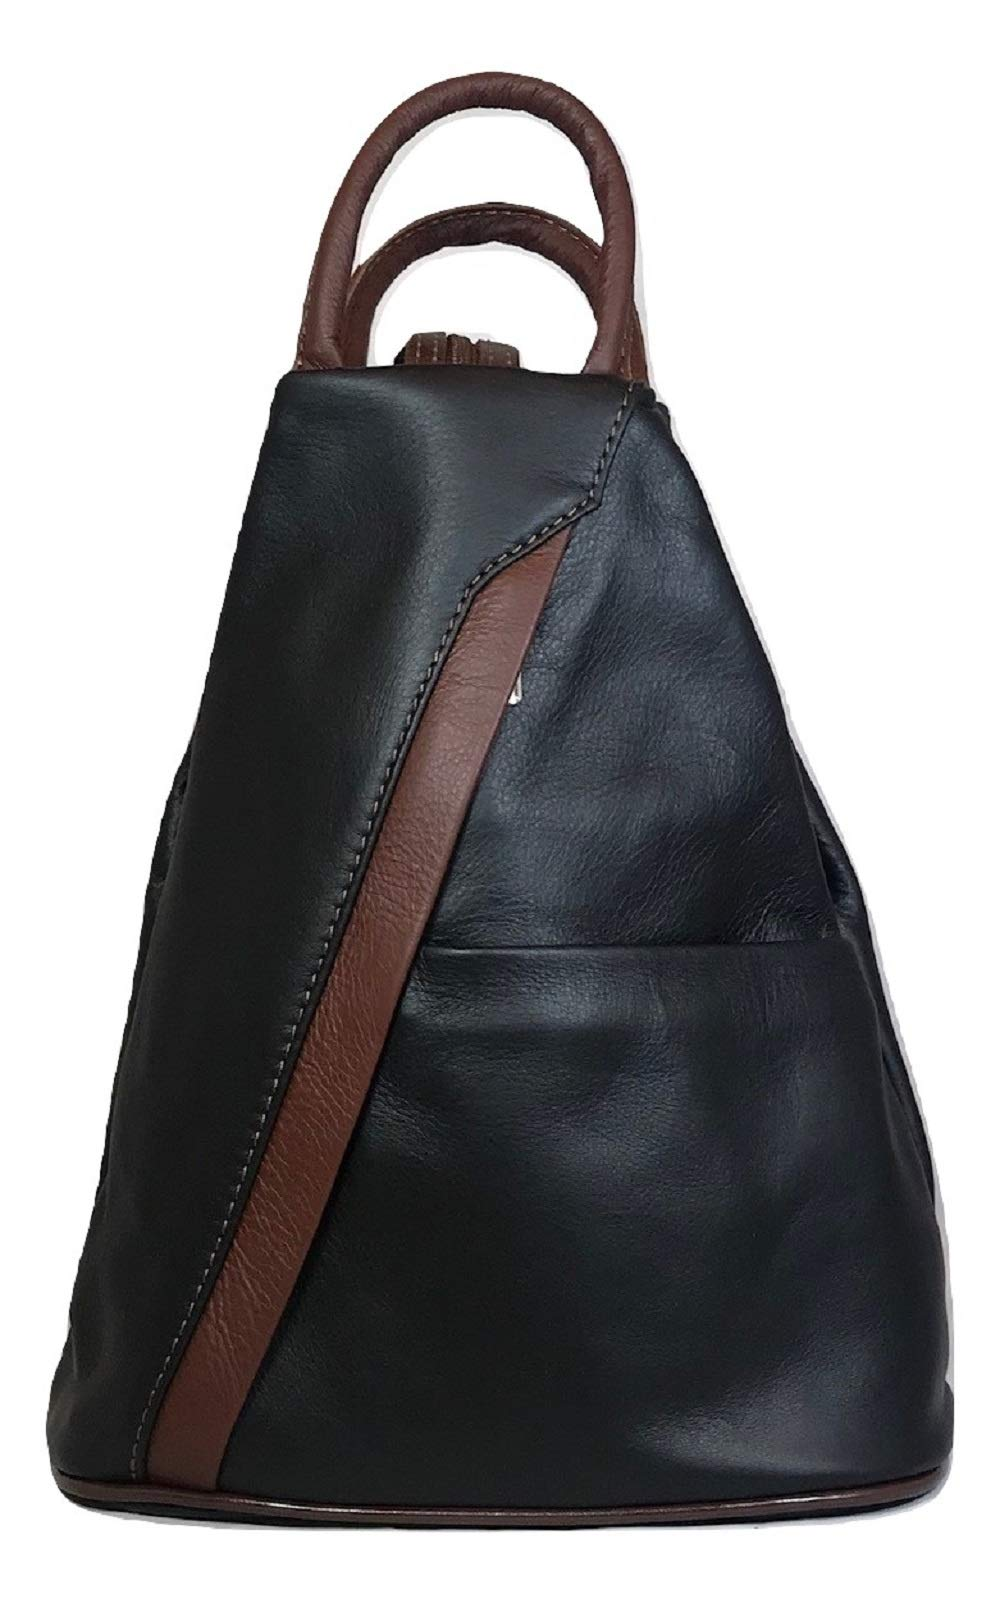 LaGaksta Submedium Backpack Convertible Teardrop Italian Leather Bag Purse Small Black-Brown